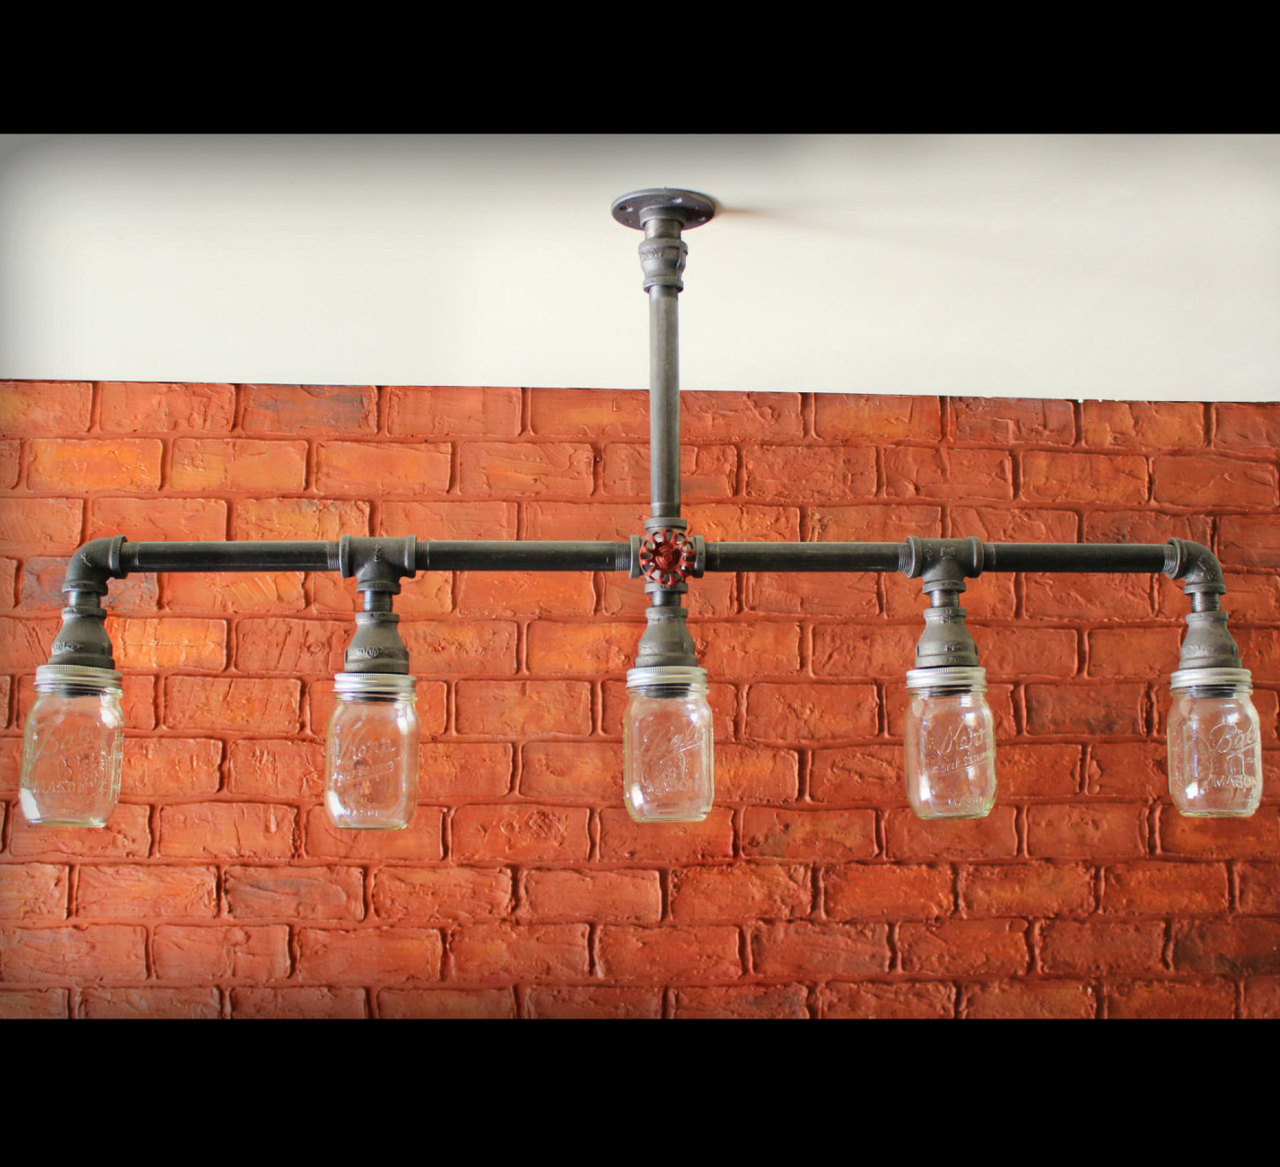 Black Pipe Mason Jar Chandelier Ceiling Light Industrial Black Pipe Stainless Steel Cages Industrial Lighting Decor With Knobs Haddock Industrial